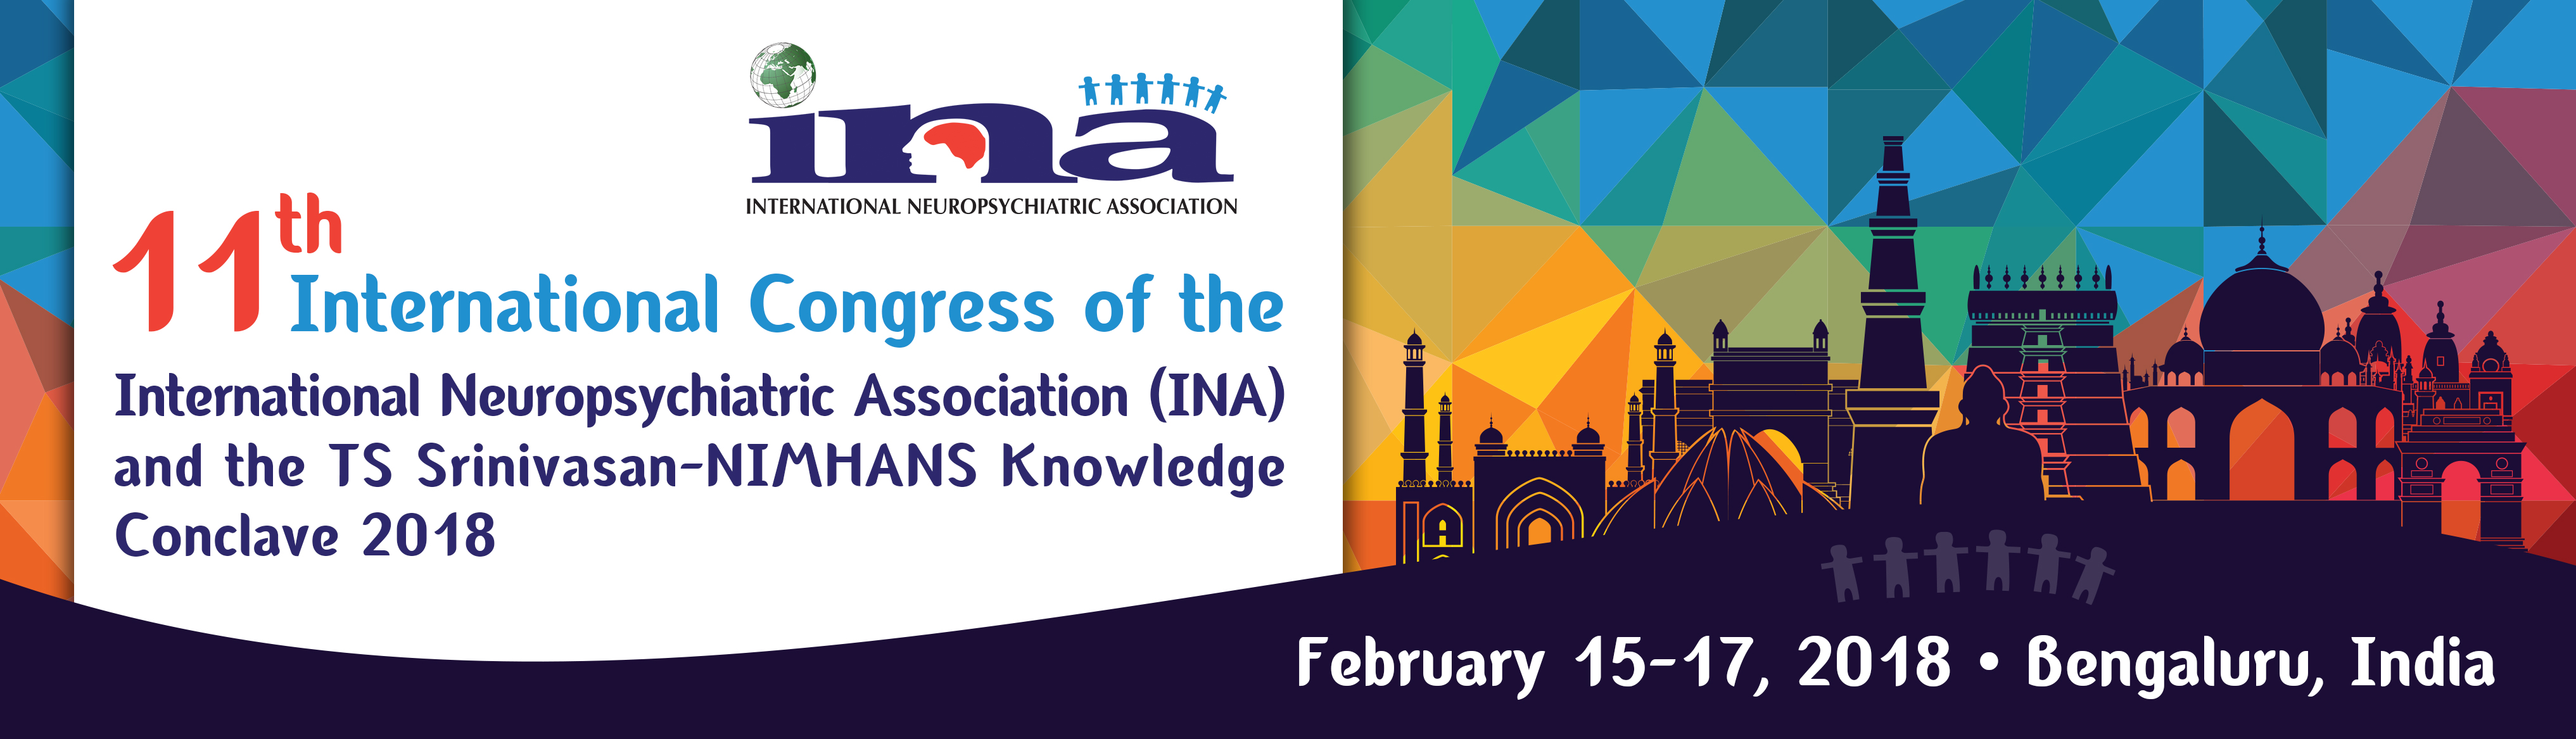 INA Conference banner.jpg